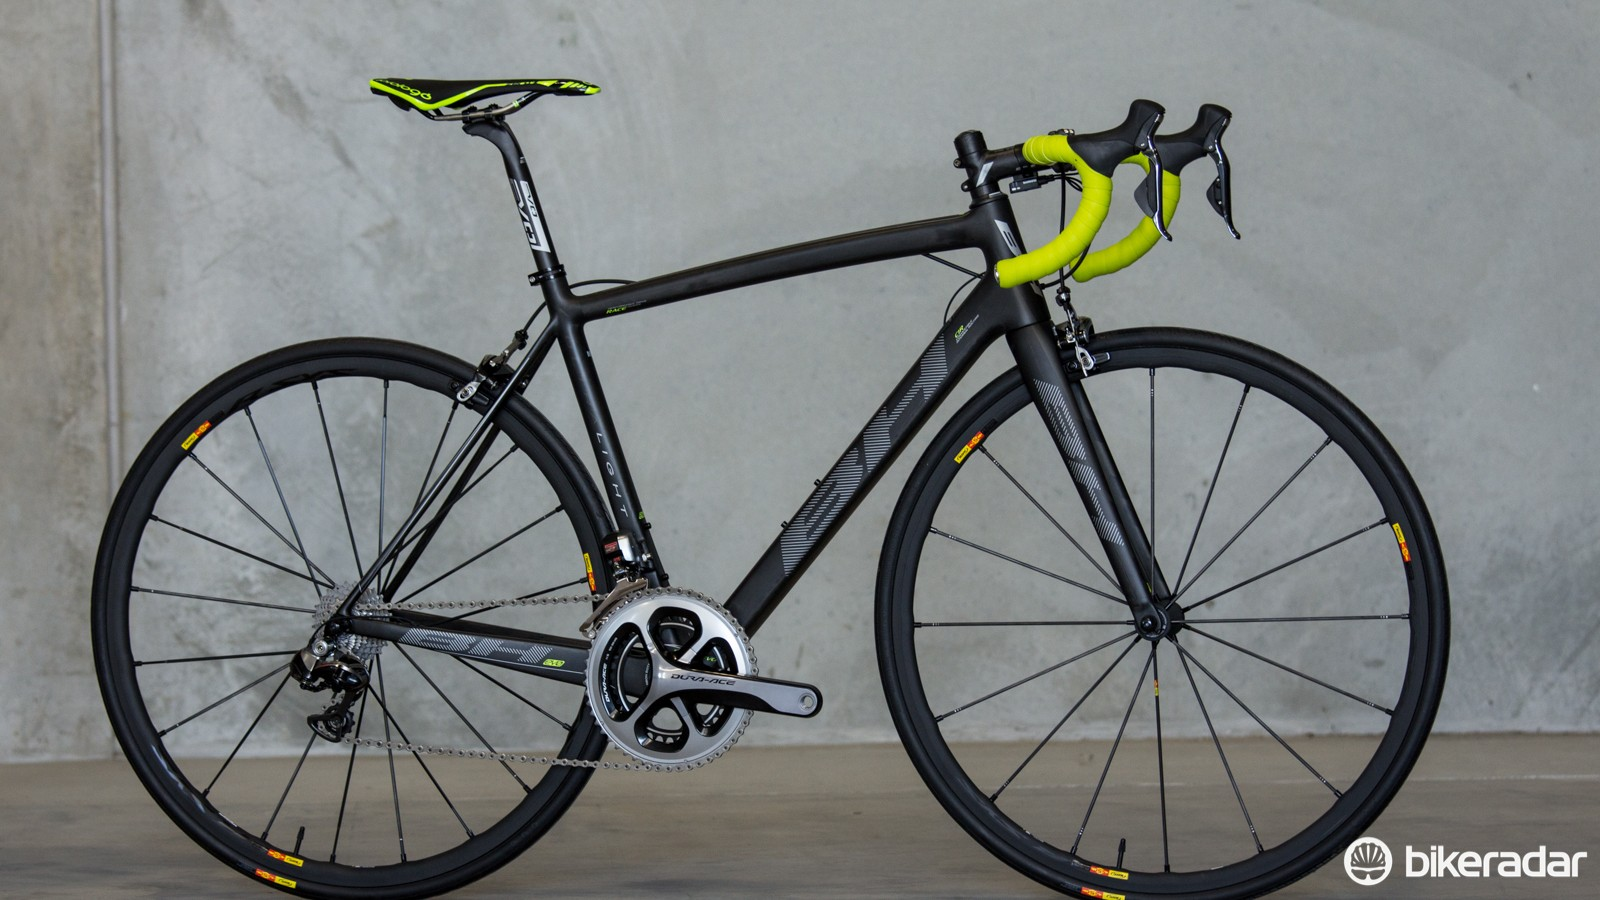 The 2015 BH Ultralight Evo takes the previously succesful Ultralight platform and refines it further. Pictured is the Australian-spec BH Ultralight Evo Dura-Ace Di2 11-speed (US$TBC / AU$9,799 / £TBC)